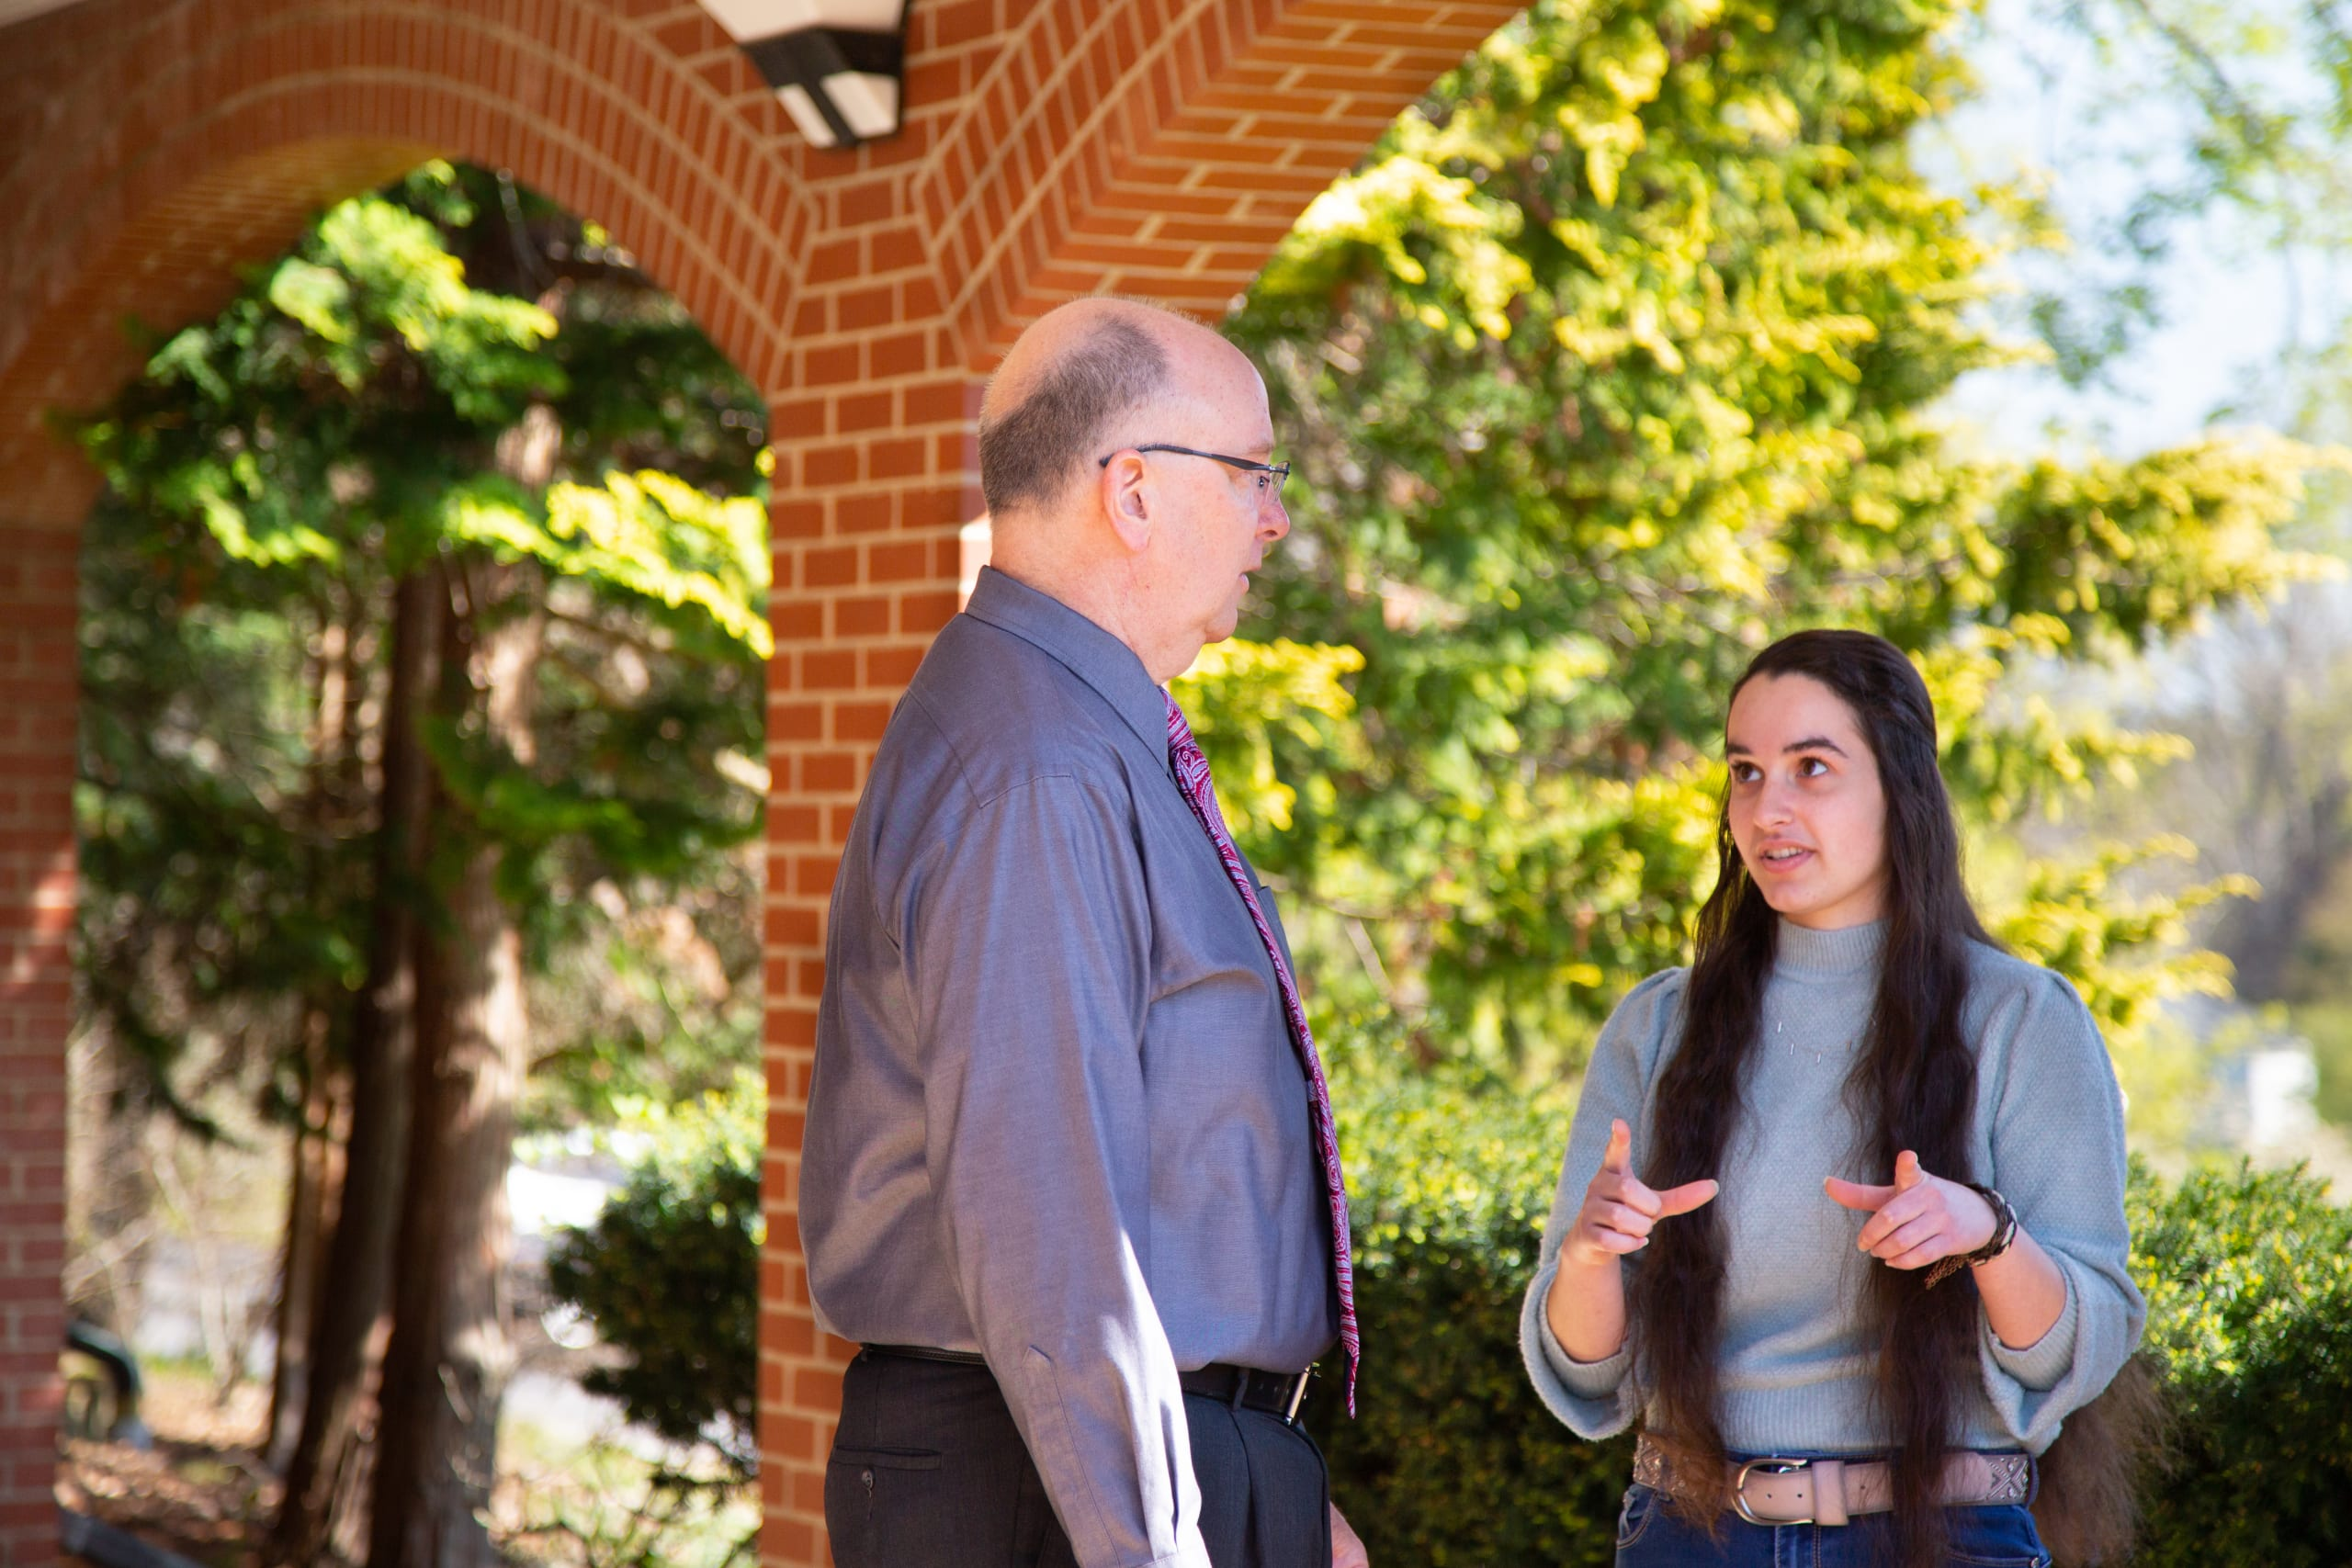 Accounting professor Bob Mahan talks with student after class.